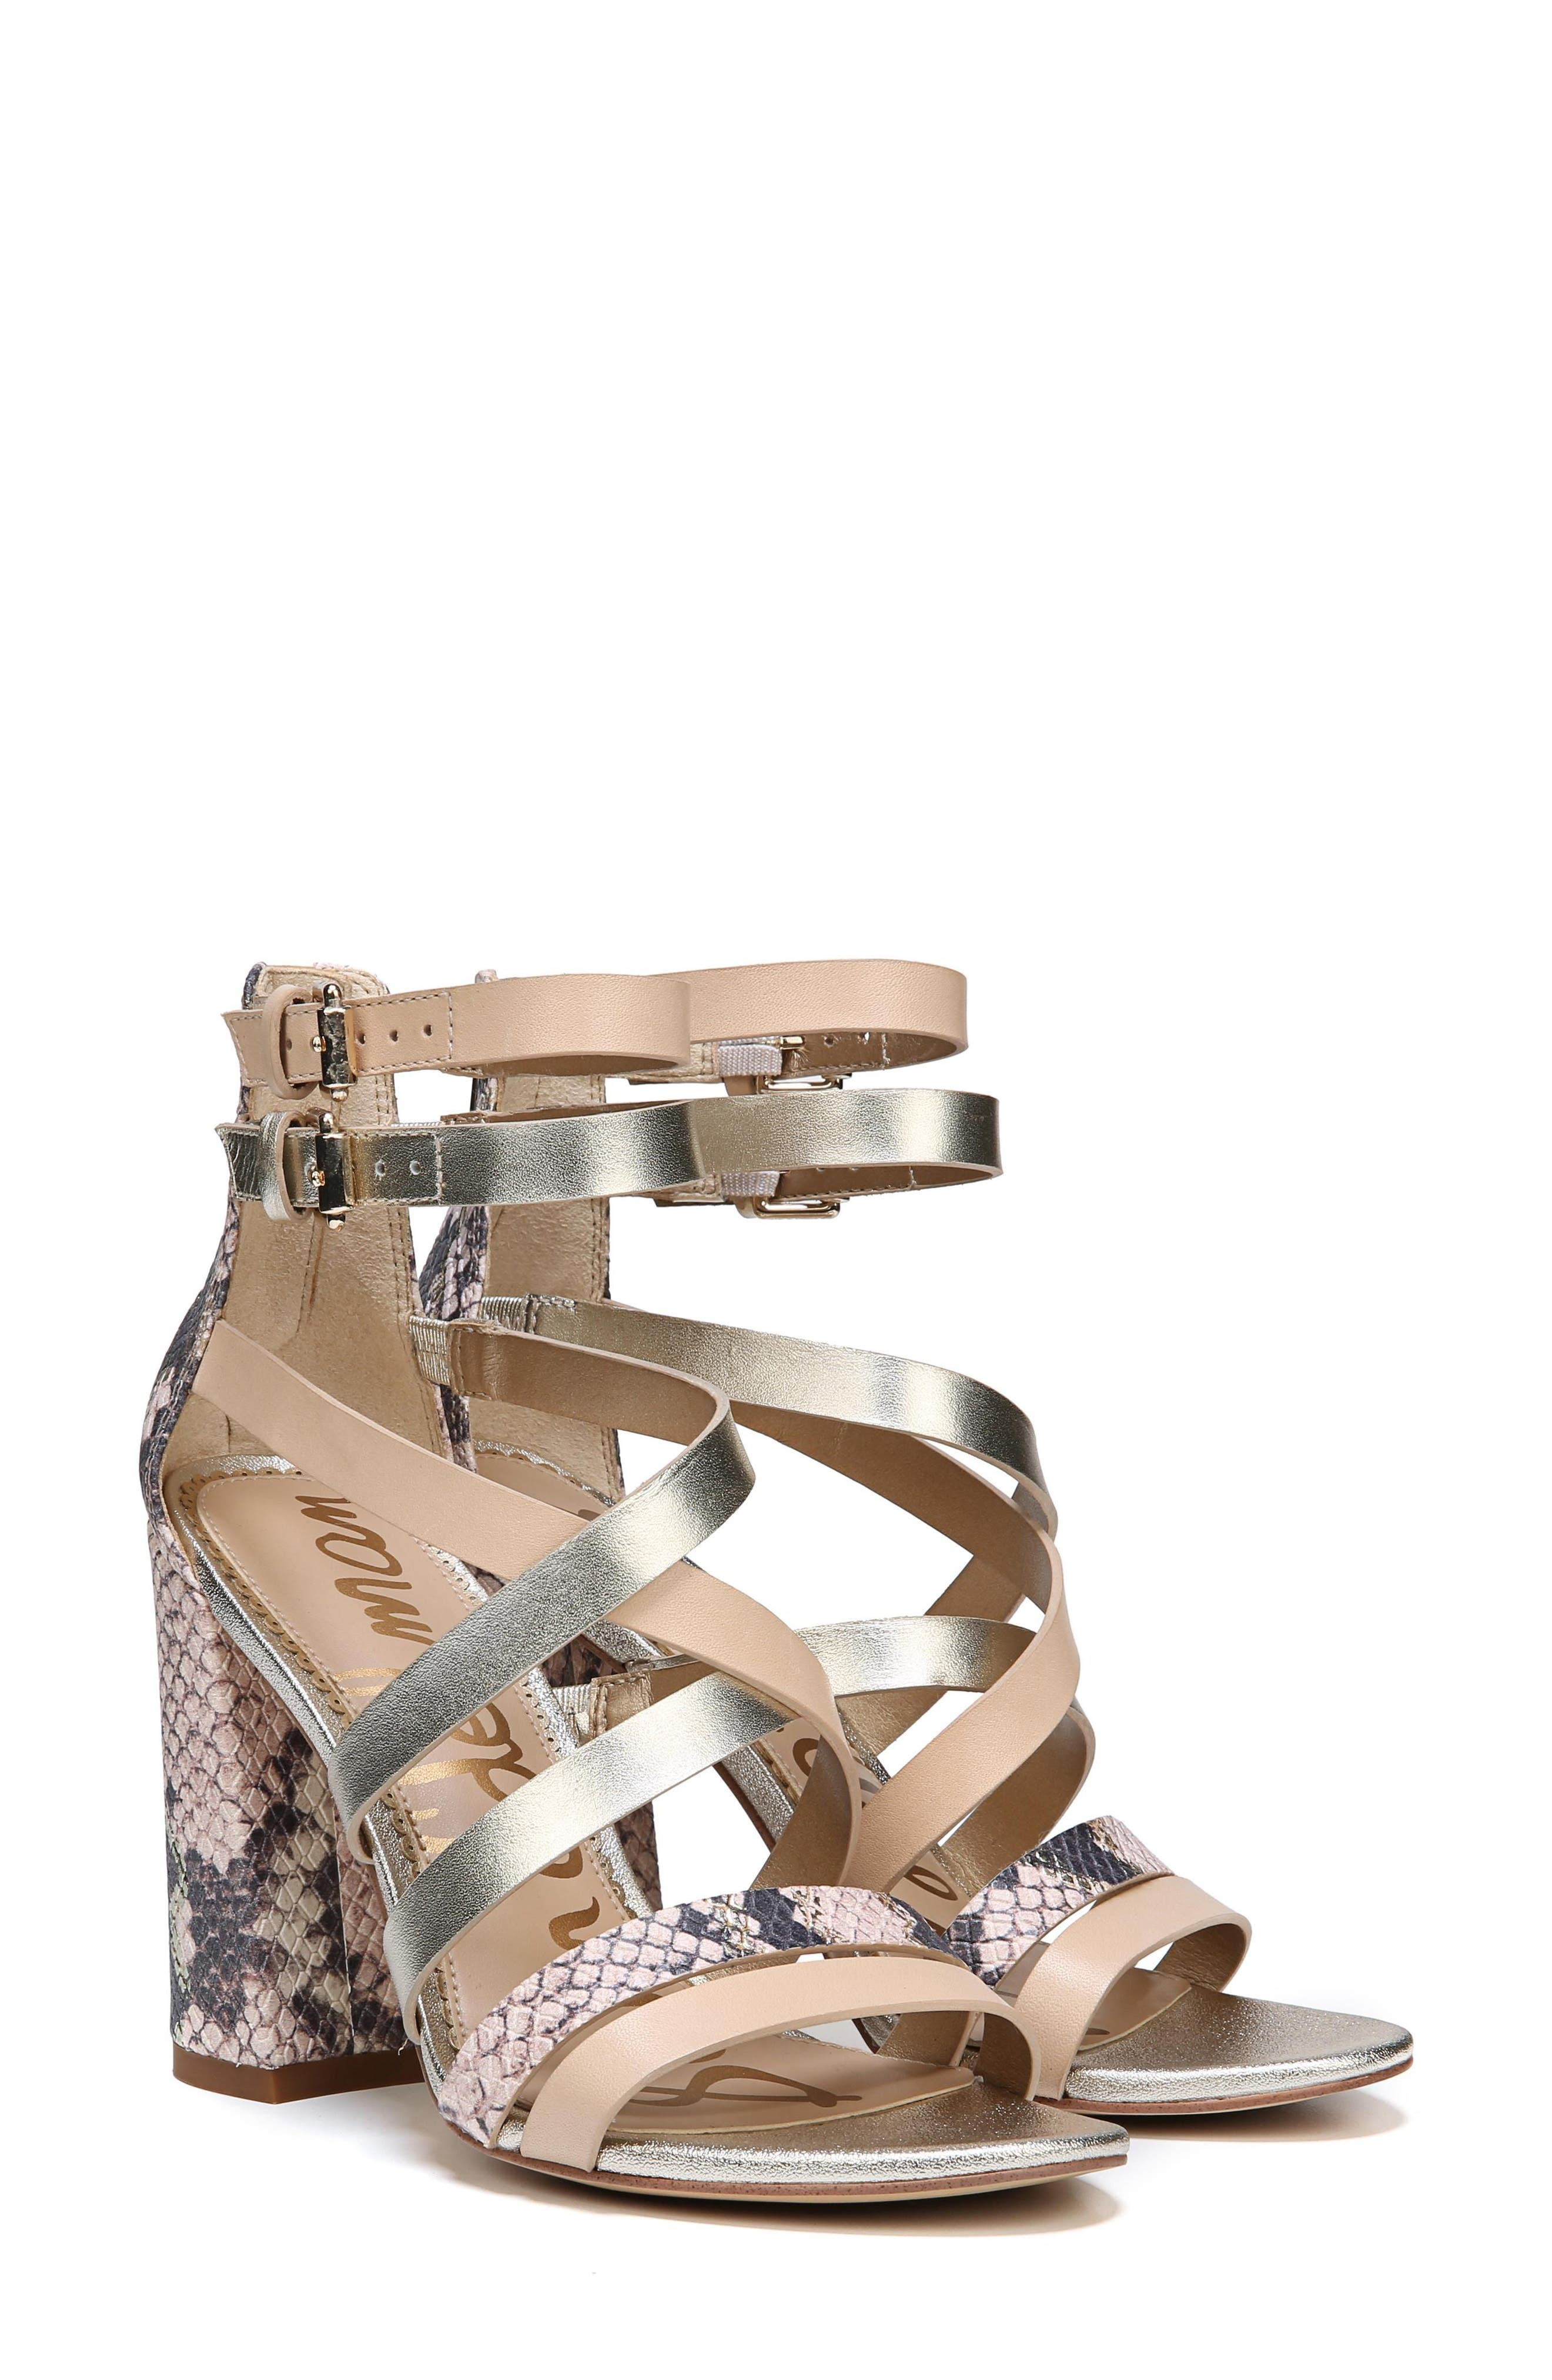 Yema Block Heel Sandal,                         Main,                         color, NATURAL/ PINK/ JUTE